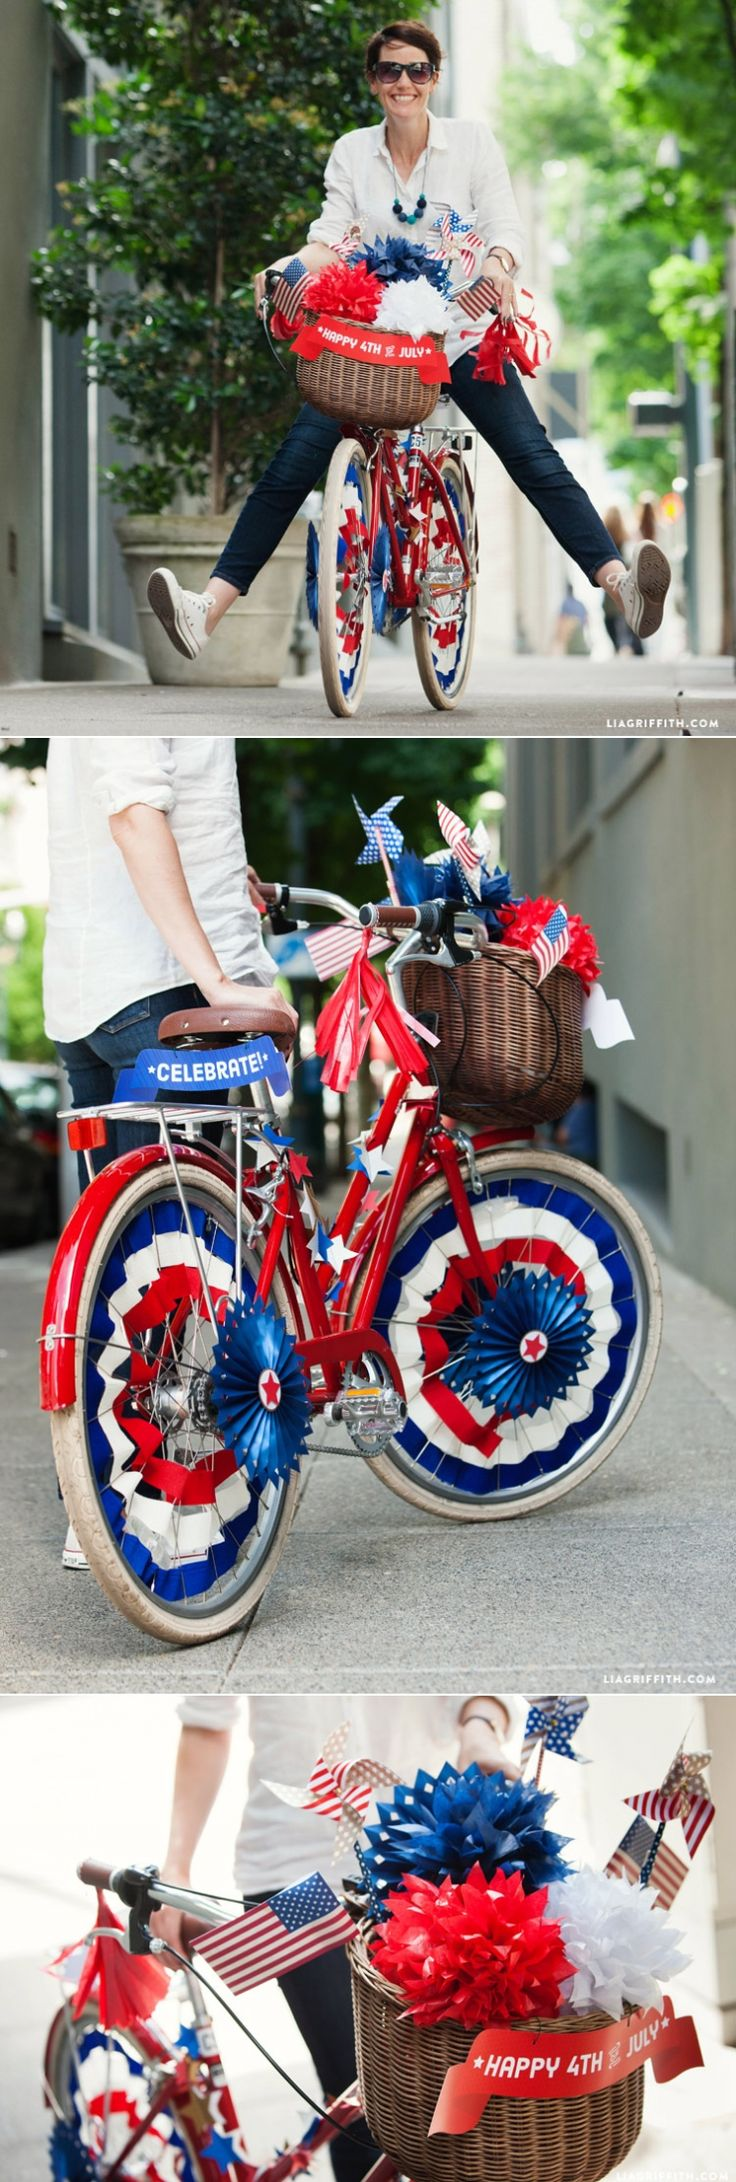 The 25+ best Bike parade ideas on Pinterest | Bike ...